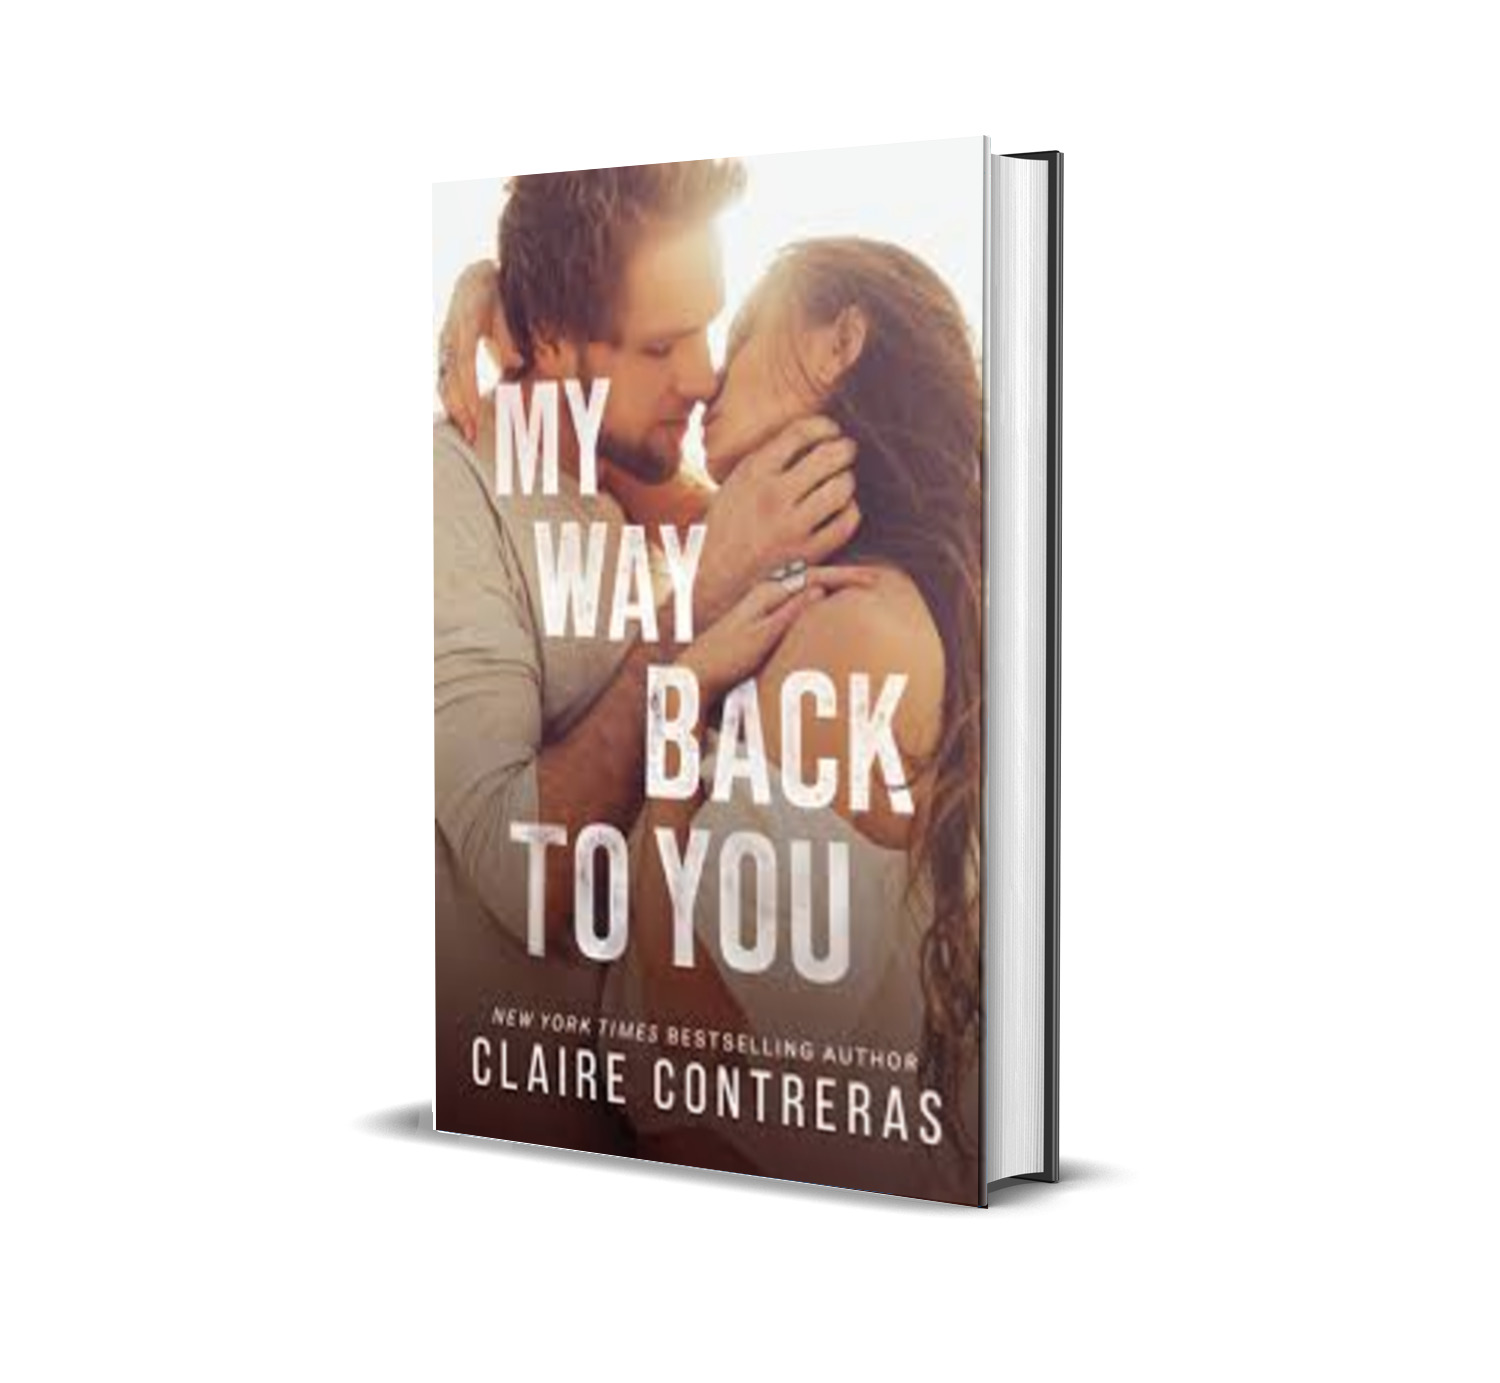 My Way Back To You - Claire Contreras